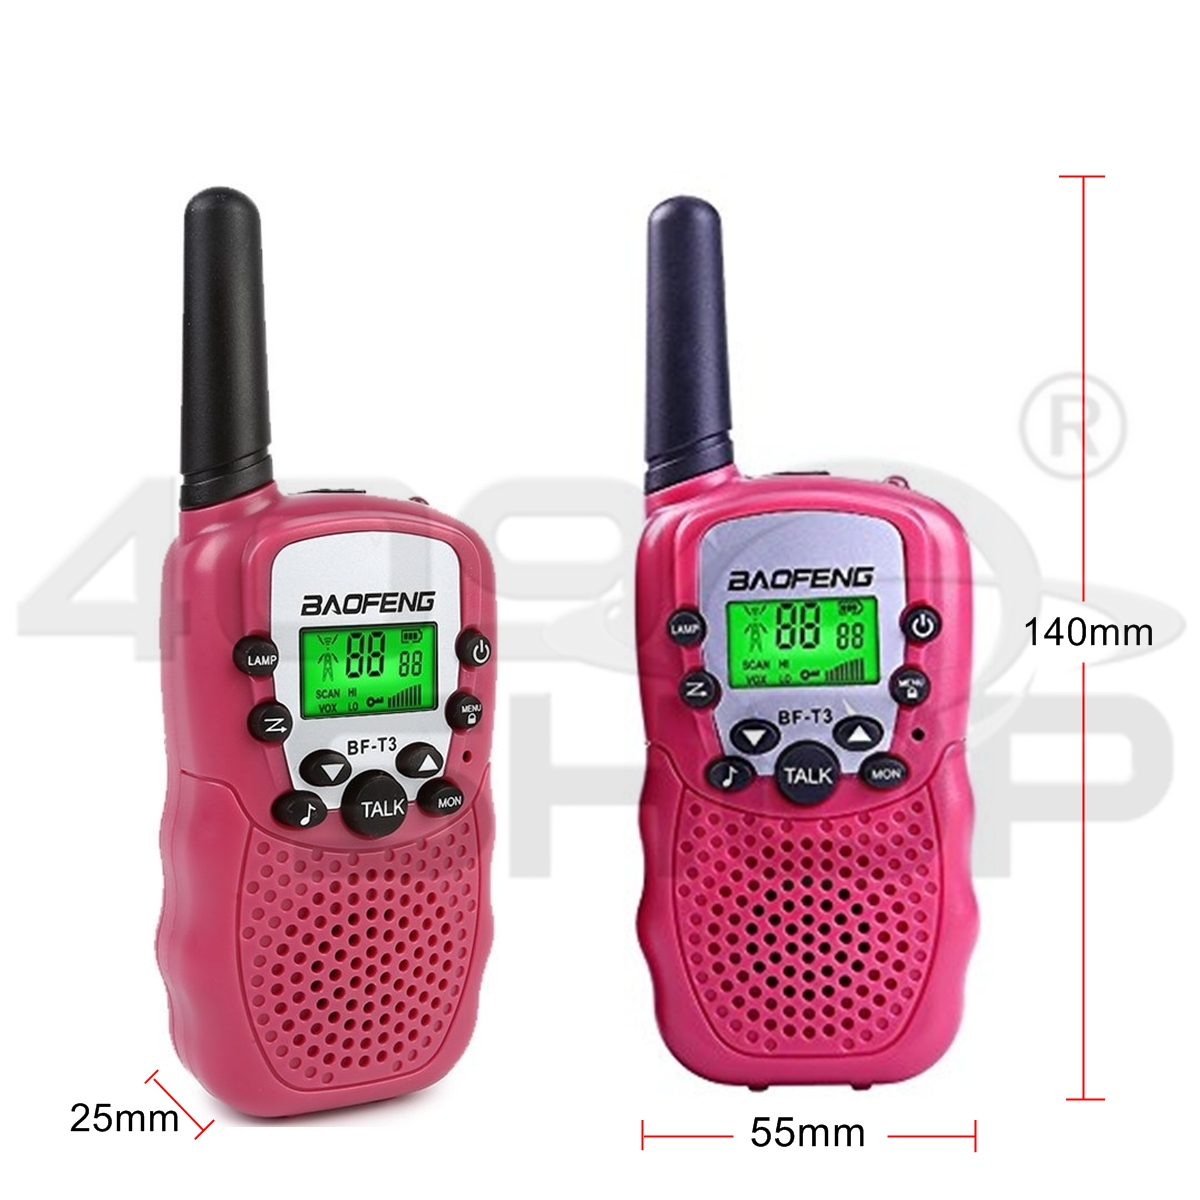 2017 New Baofeng BF-T3 Pink Handheld Walkie Talkie UHF Mini Two Way Radio x2